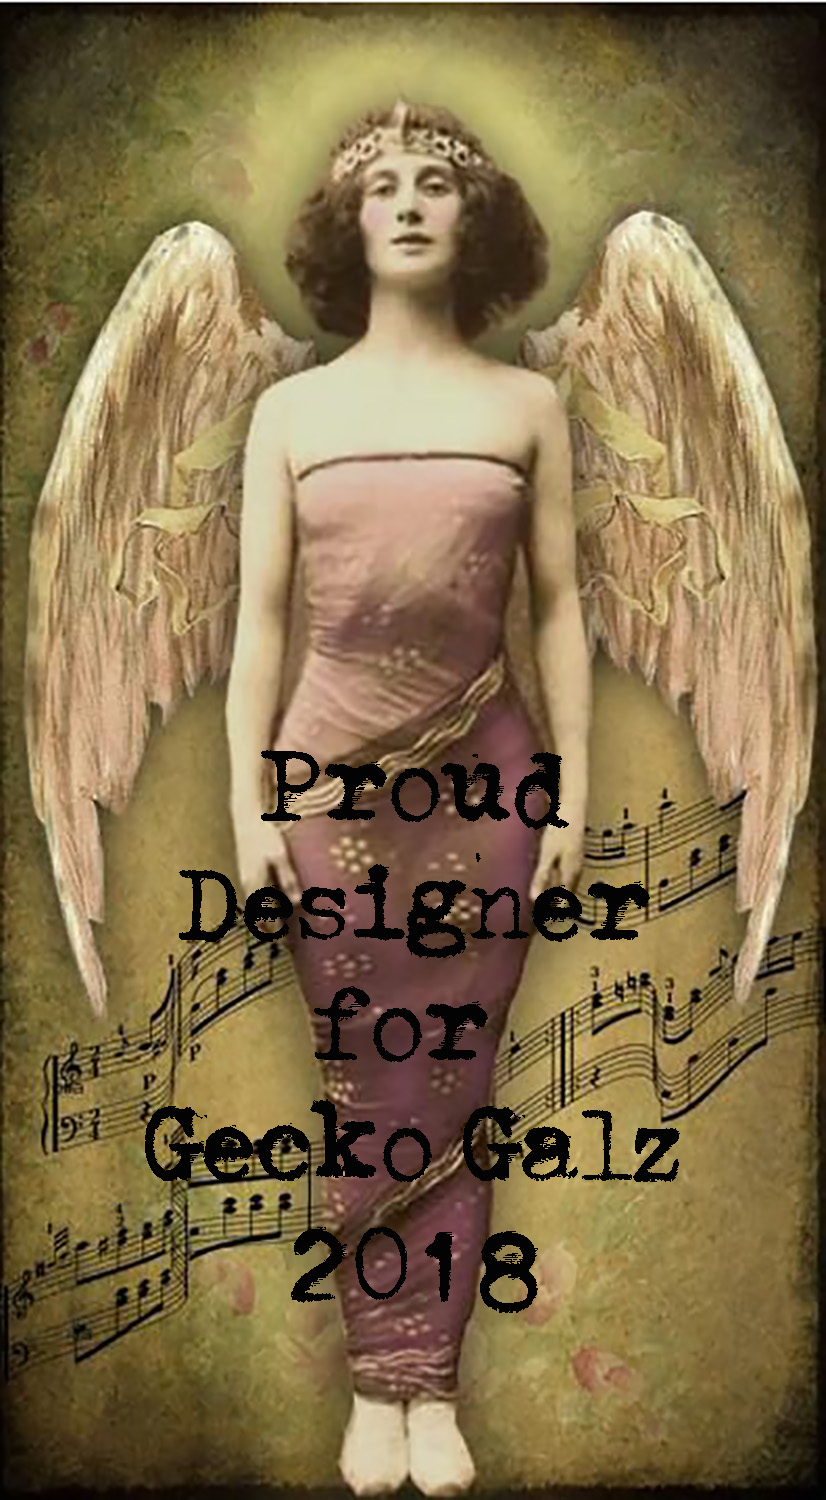 Gxeckogalz Design Team